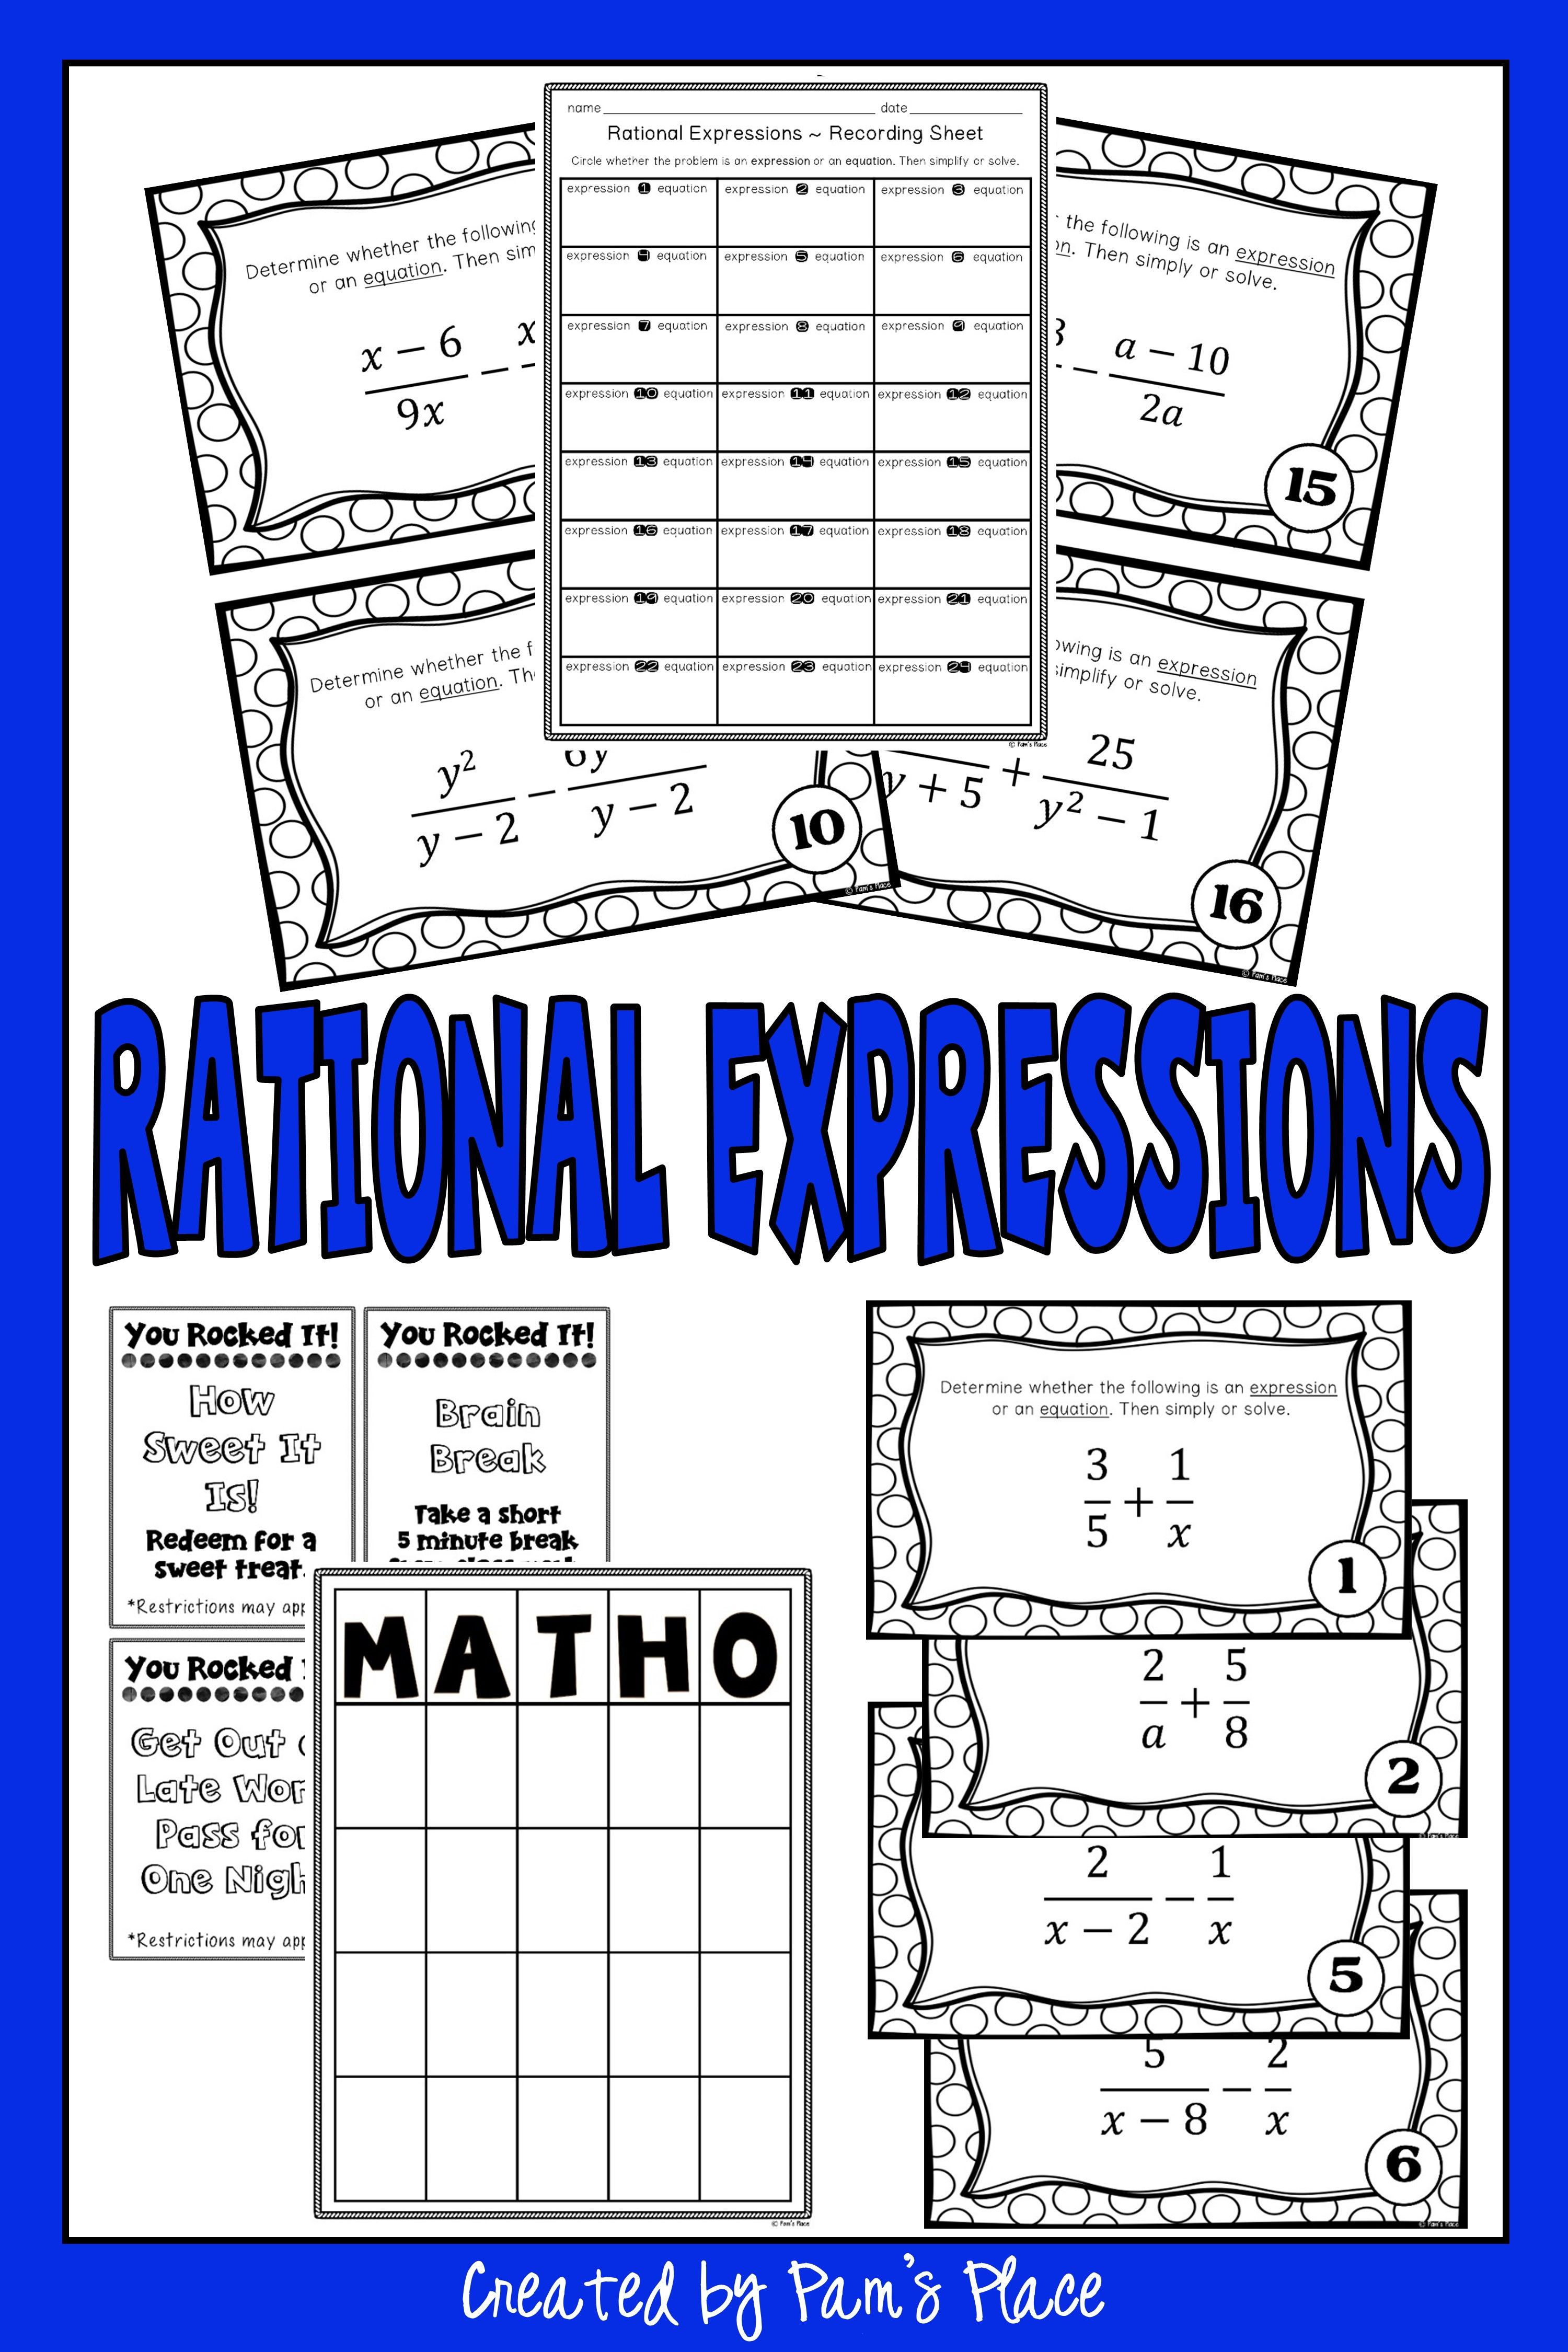 Rational Expressions Activity With Images